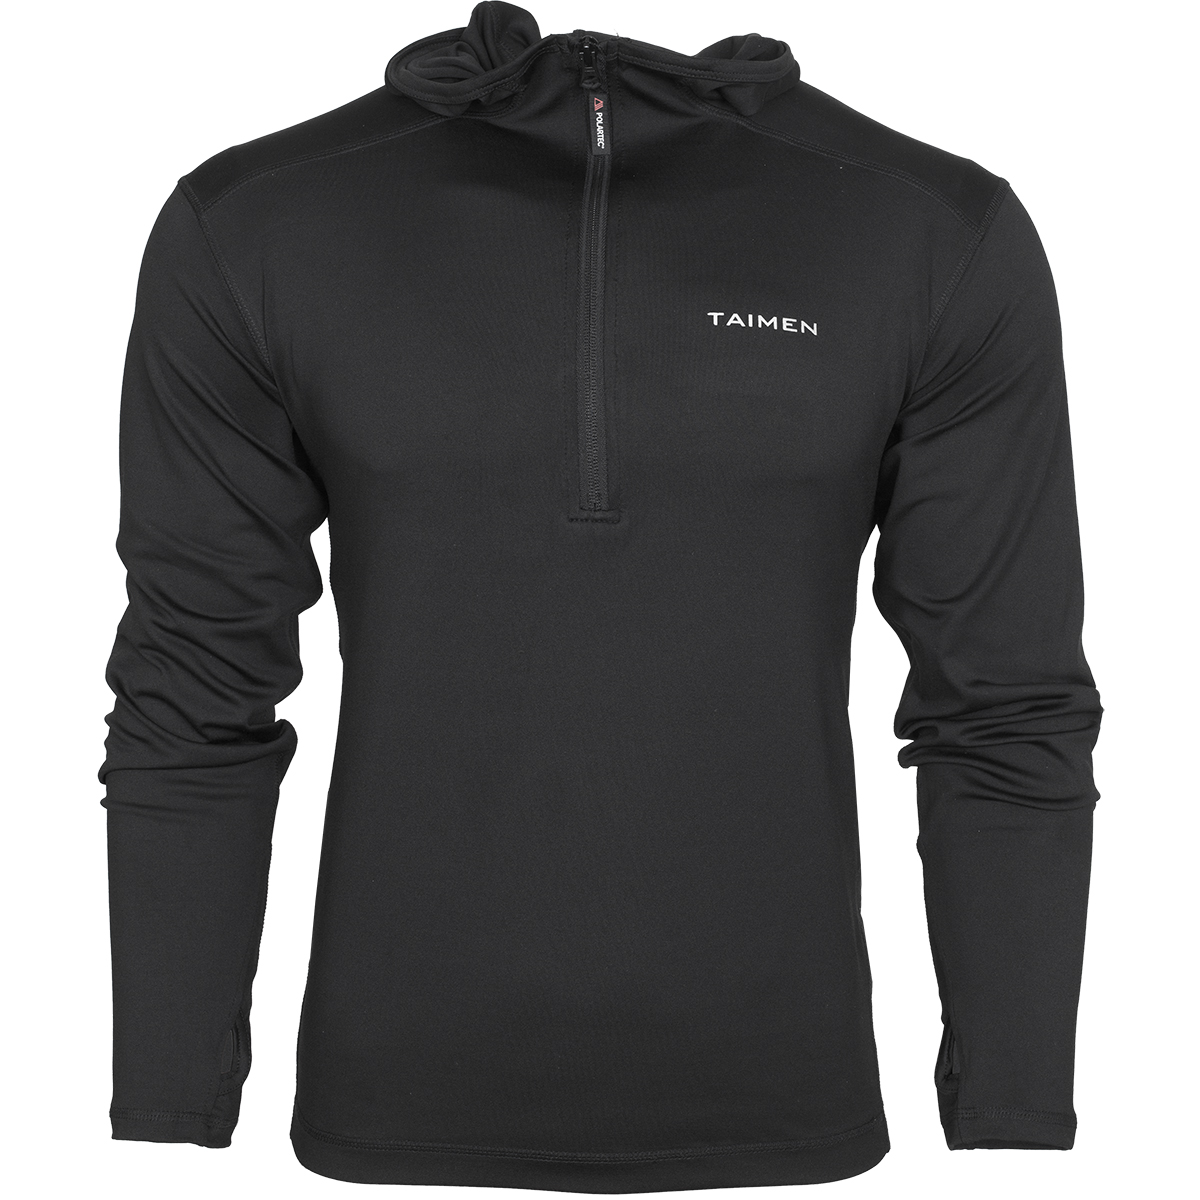 Taimen Polartec Power Stretch Lt Hoody  - Black